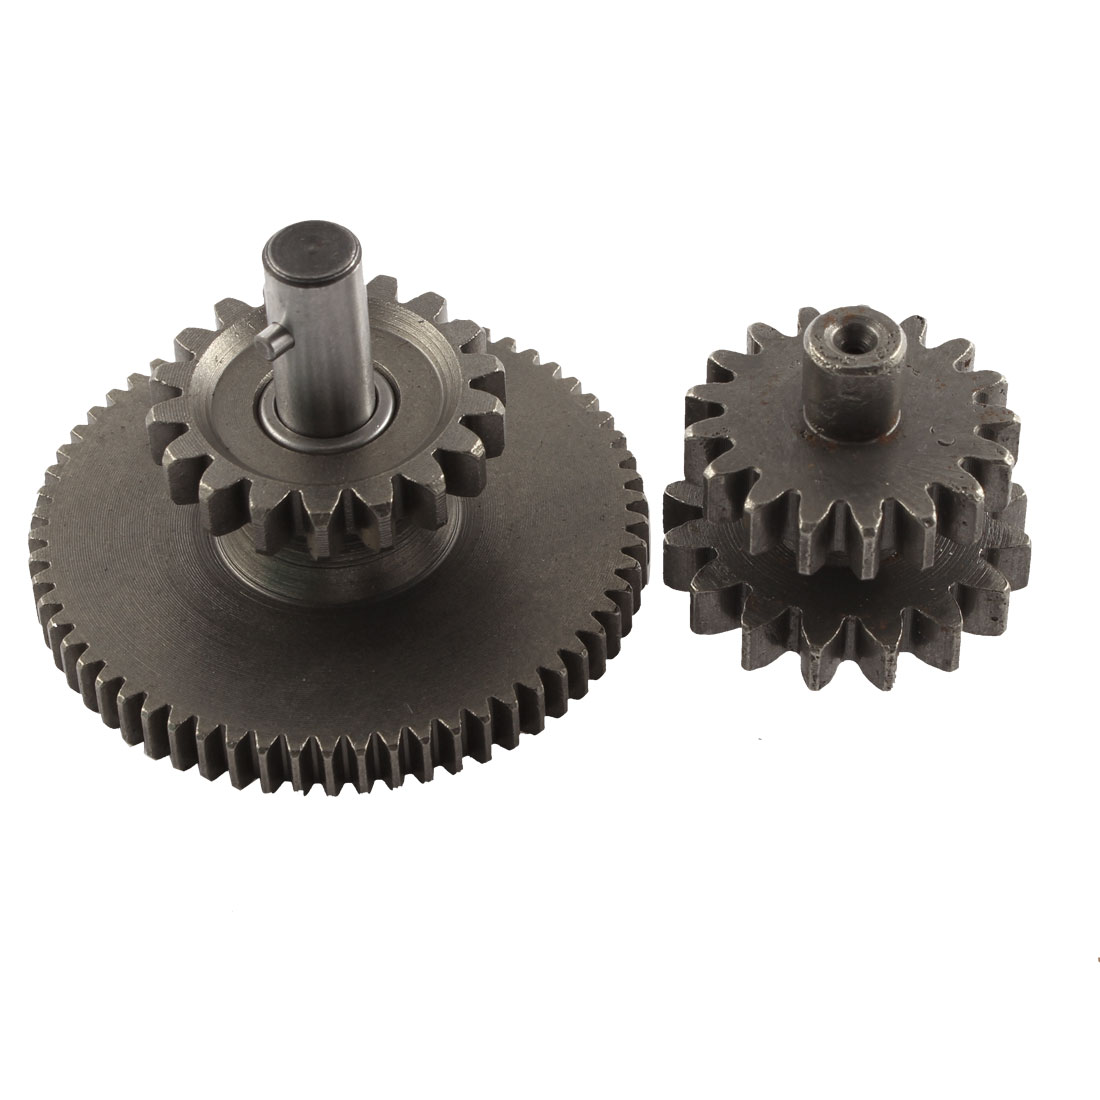 Unique Bargains 62mm Dia Motorcycle Transmission Gears Shafts Shift for CG125